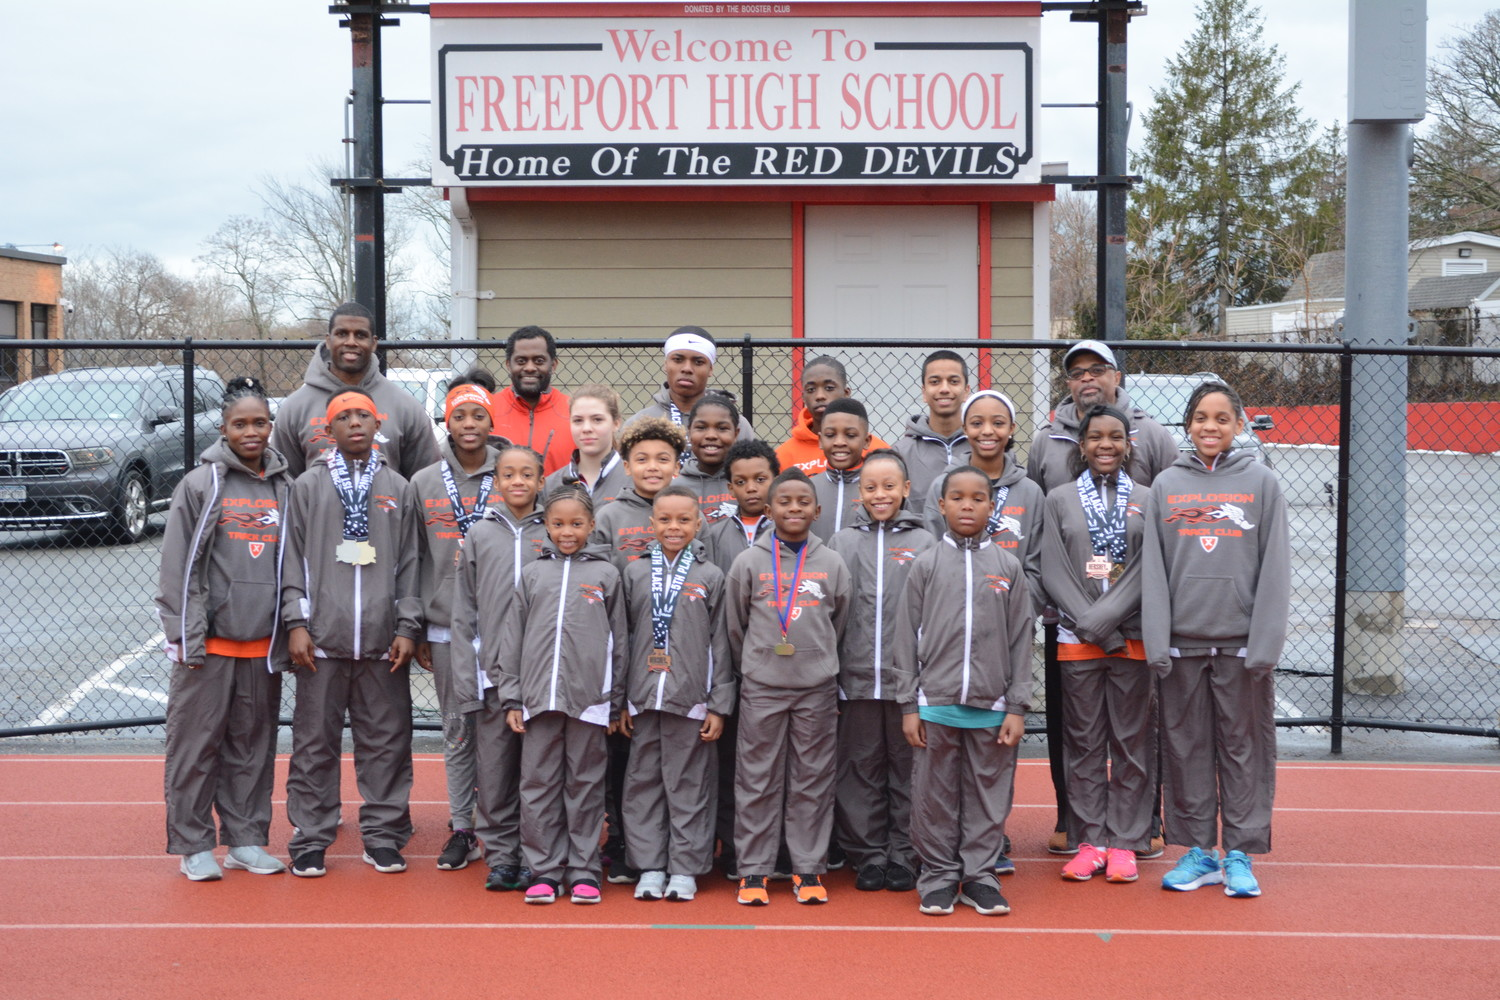 Athletes and coaches from the Explosion Track Club with their medals on the track at Freeport High School, where they practice.